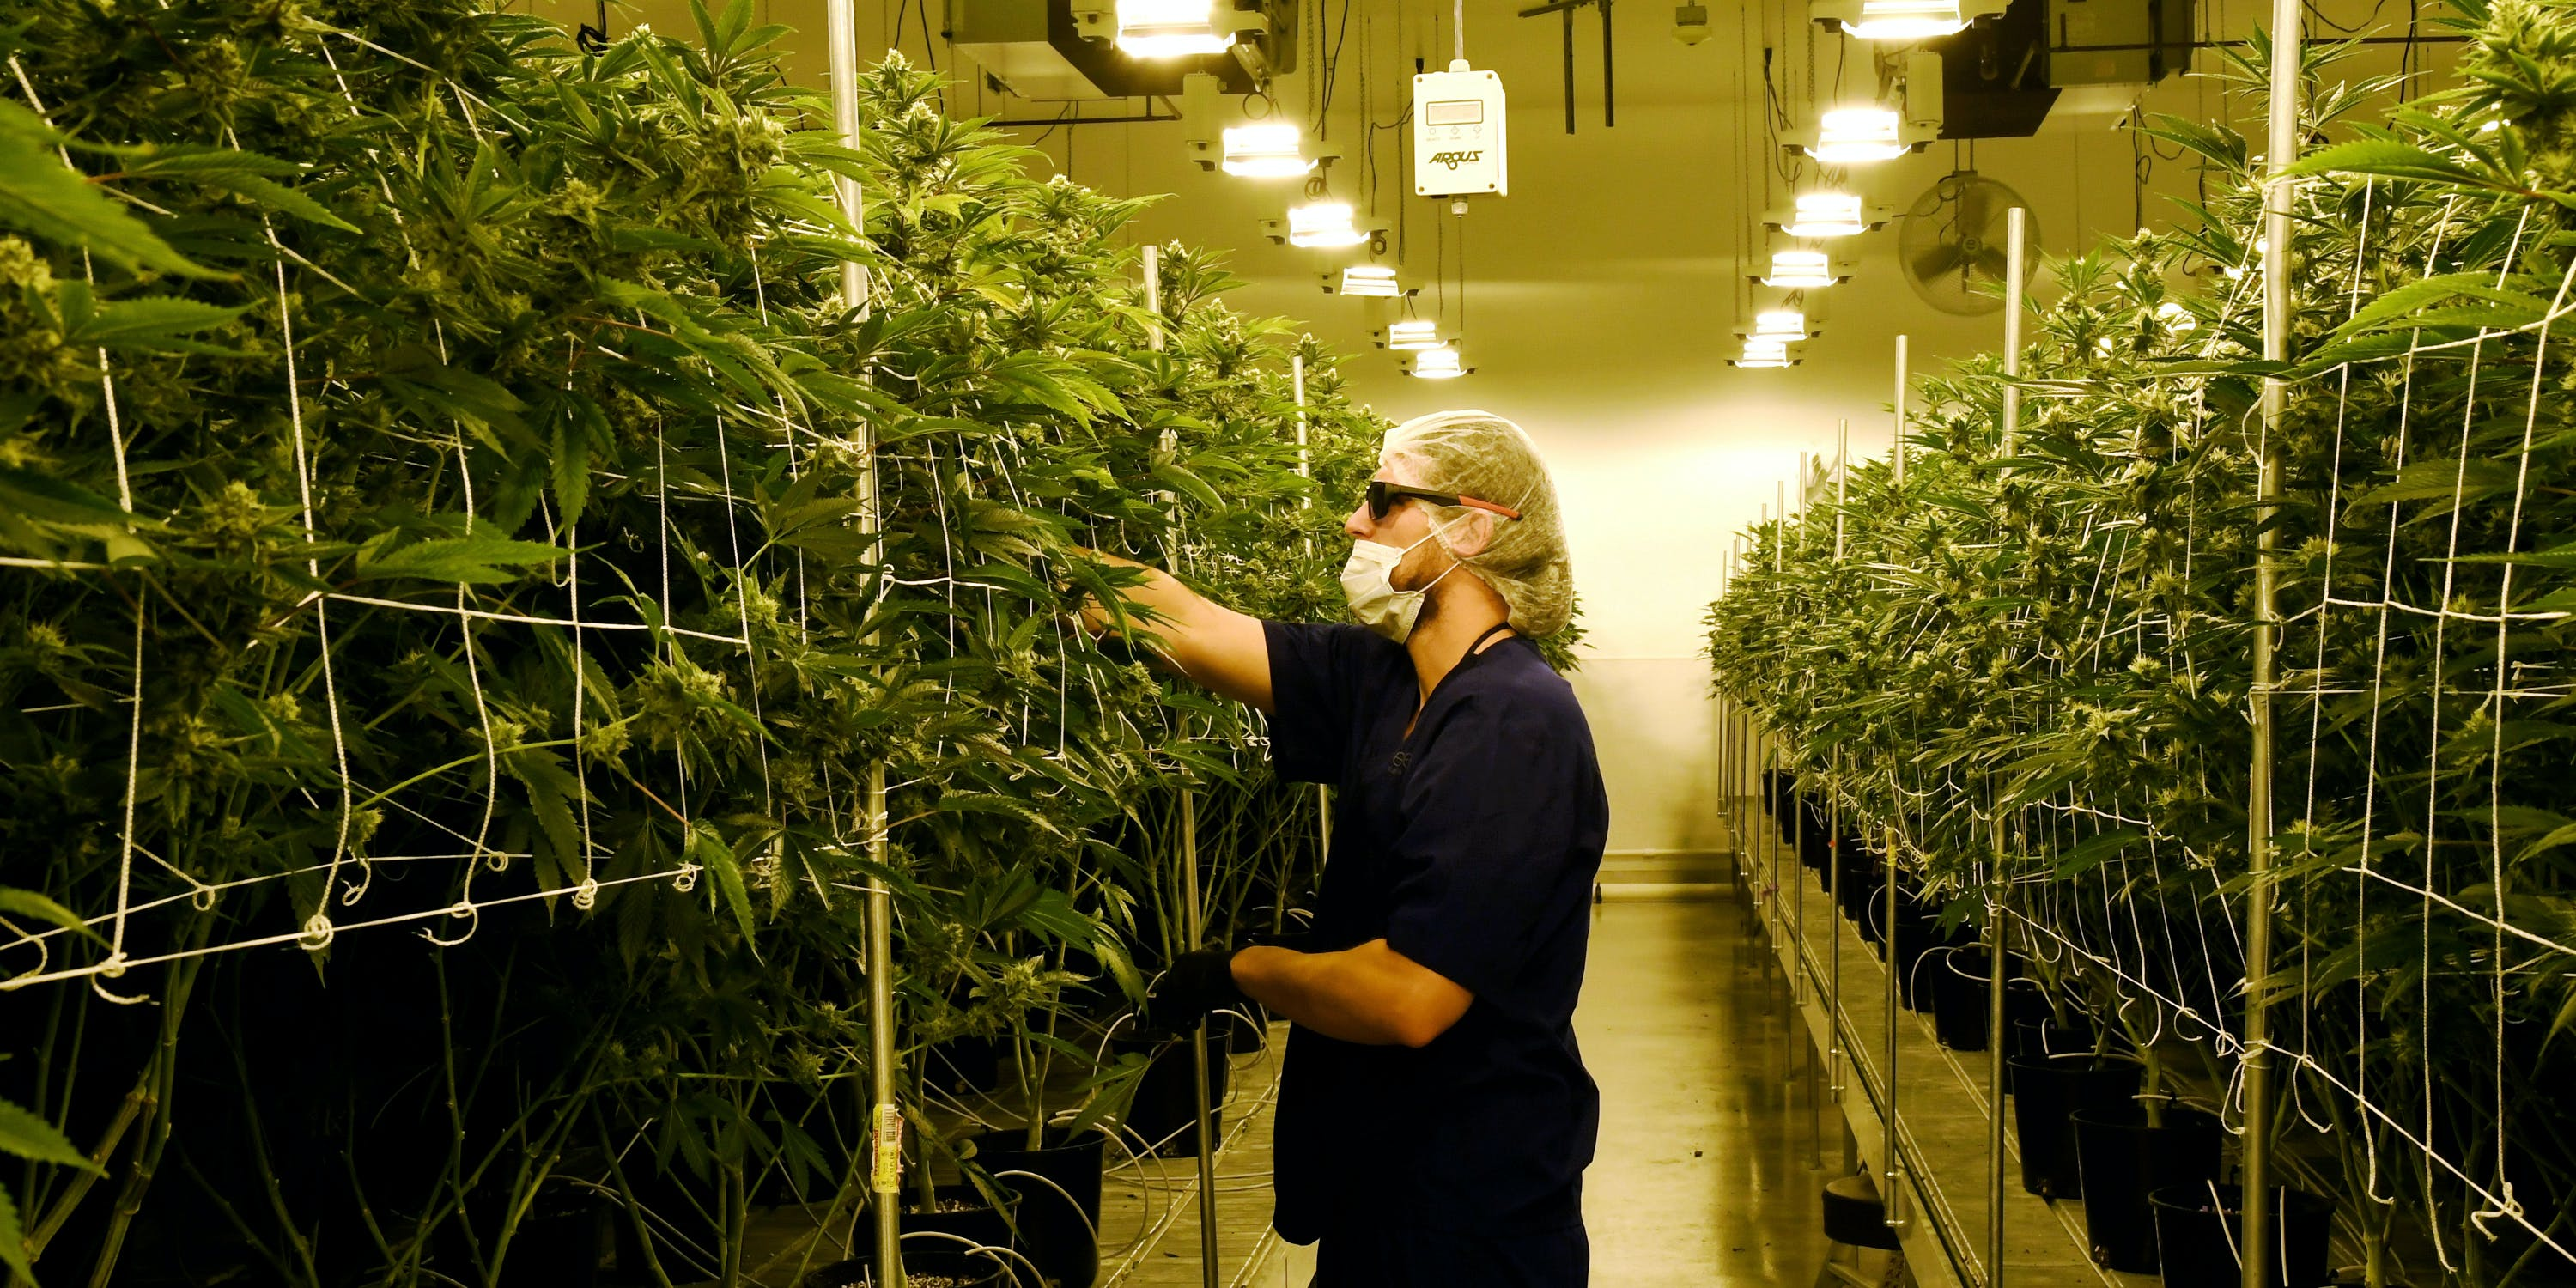 Worker examines plants in a Las Vegas, Nevada based Cannabis facility. Indoor cannabis grows are said to use an extraordinary amount of light and energy. That's why in many states they qualify for energy grants, but Maine won't be one of them.